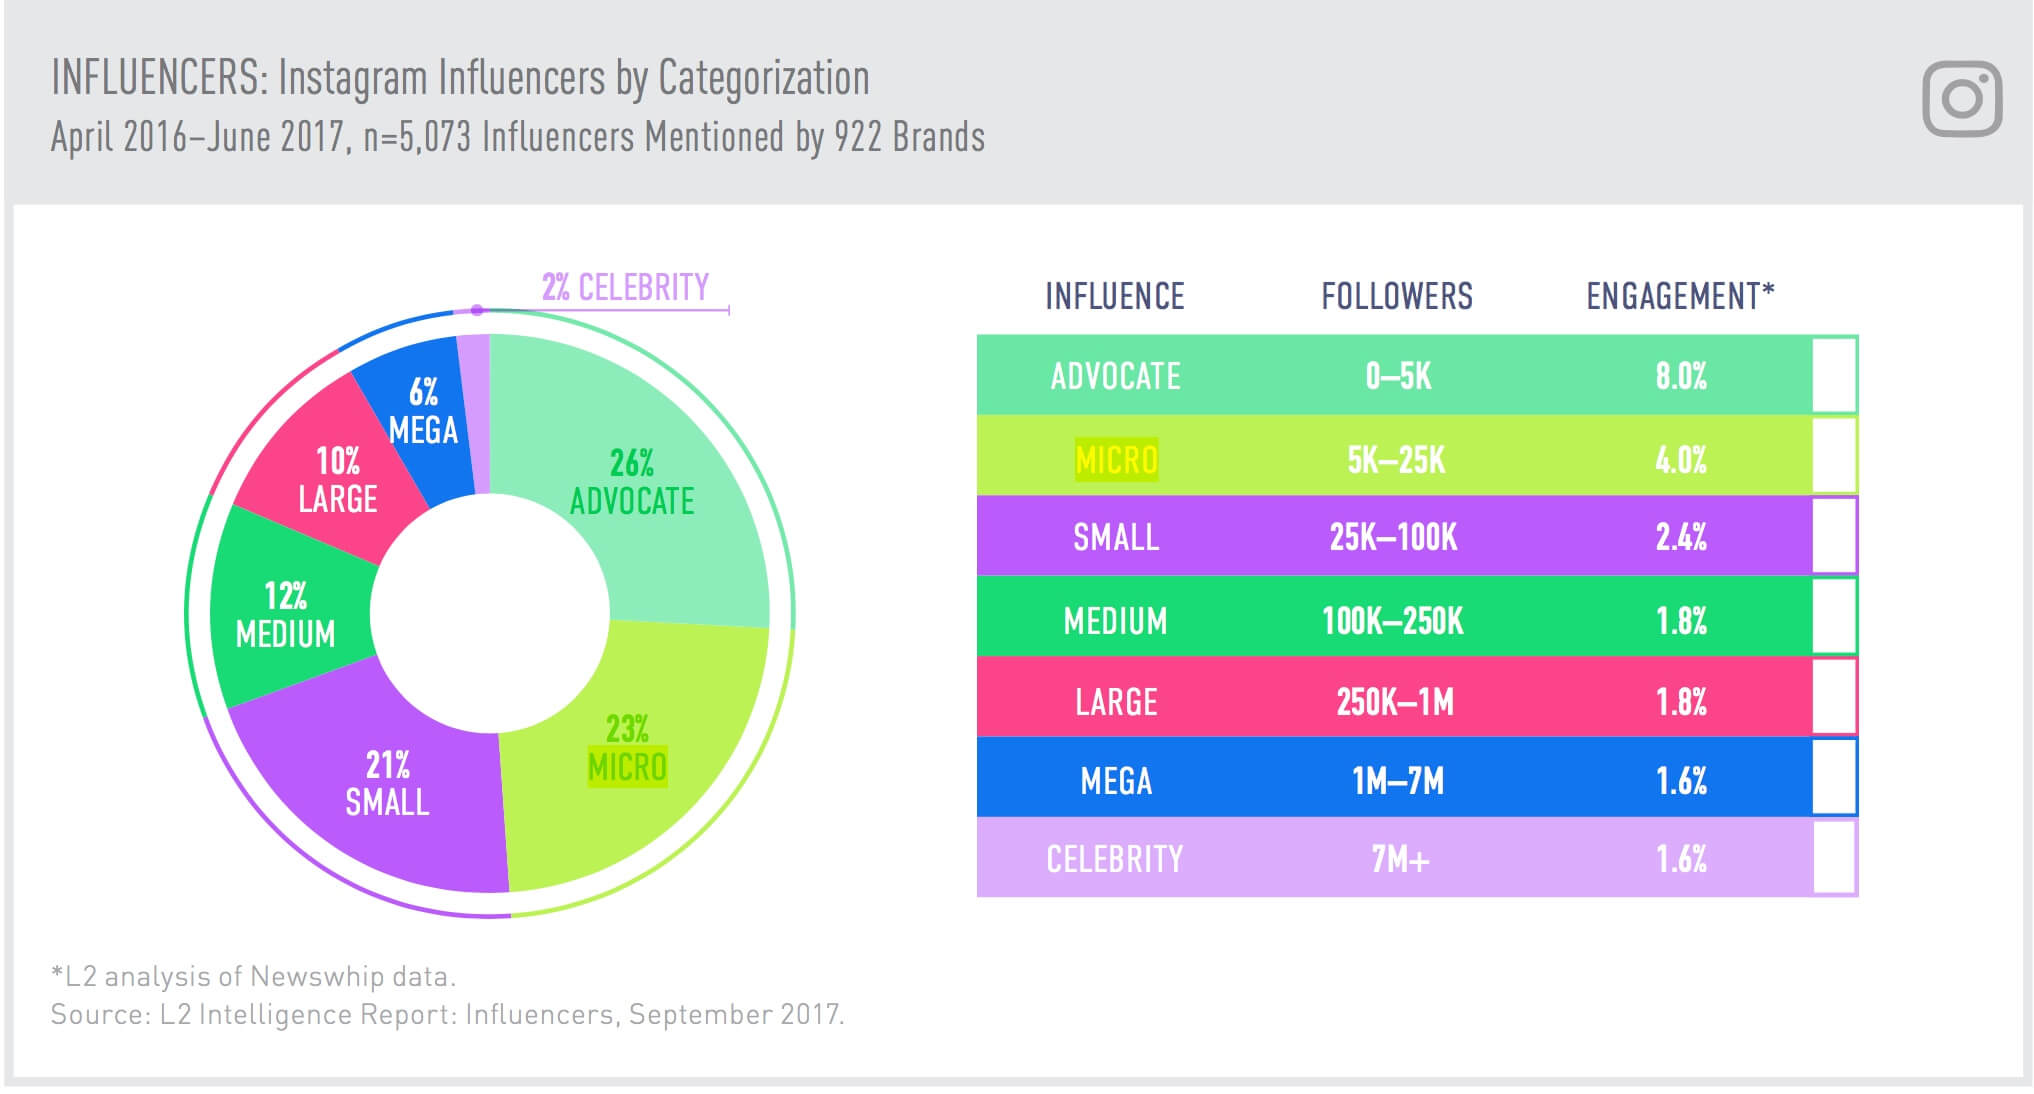 influencers-engagement-rate-2017-instagram-2.jpg